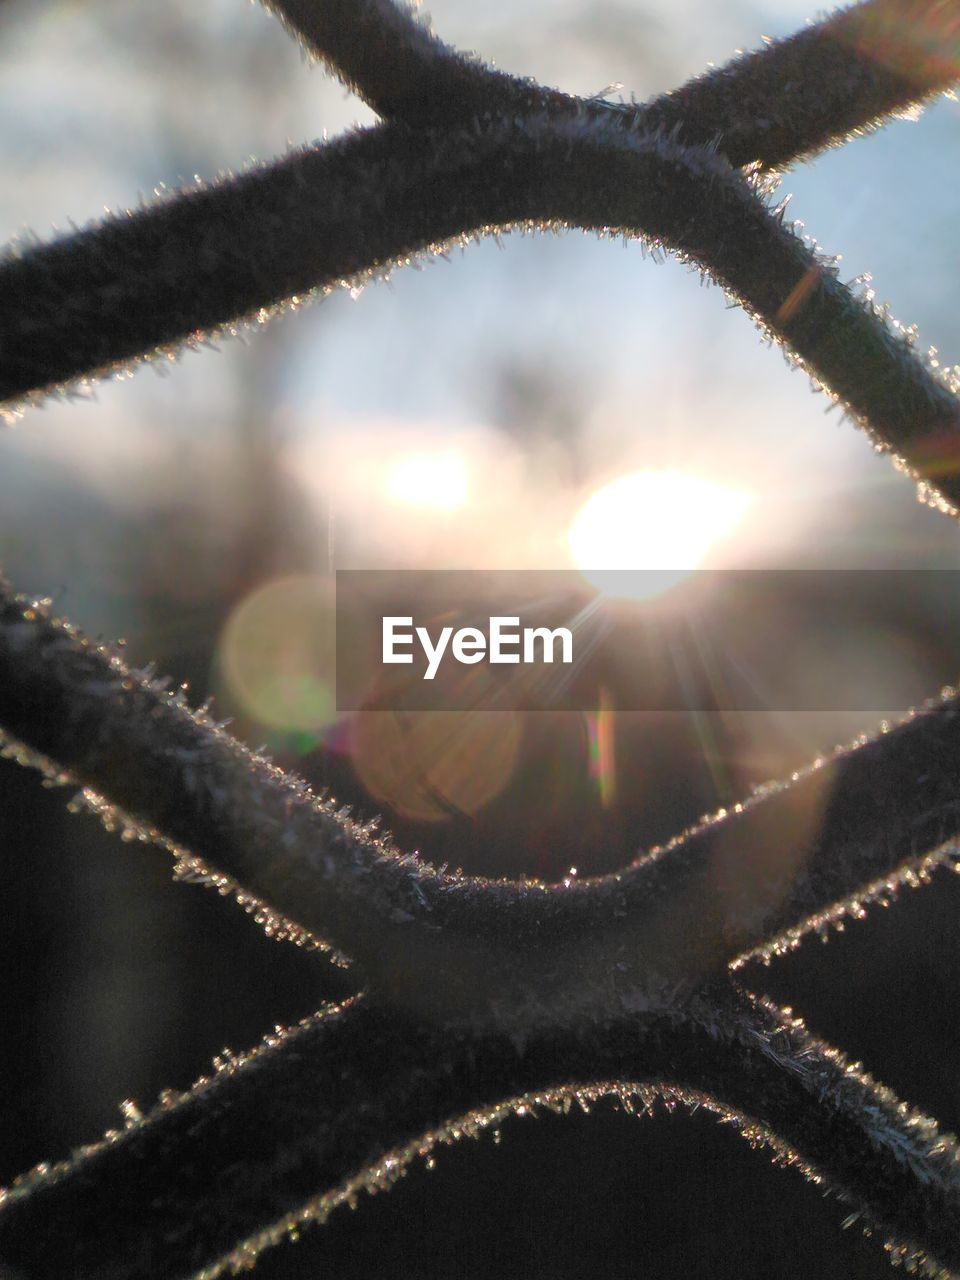 lens flare, sunlight, sun, close-up, plant, no people, nature, focus on foreground, day, beauty in nature, selective focus, sky, sunbeam, outdoors, growth, cold temperature, frozen, tranquility, snow, bright, solar flare